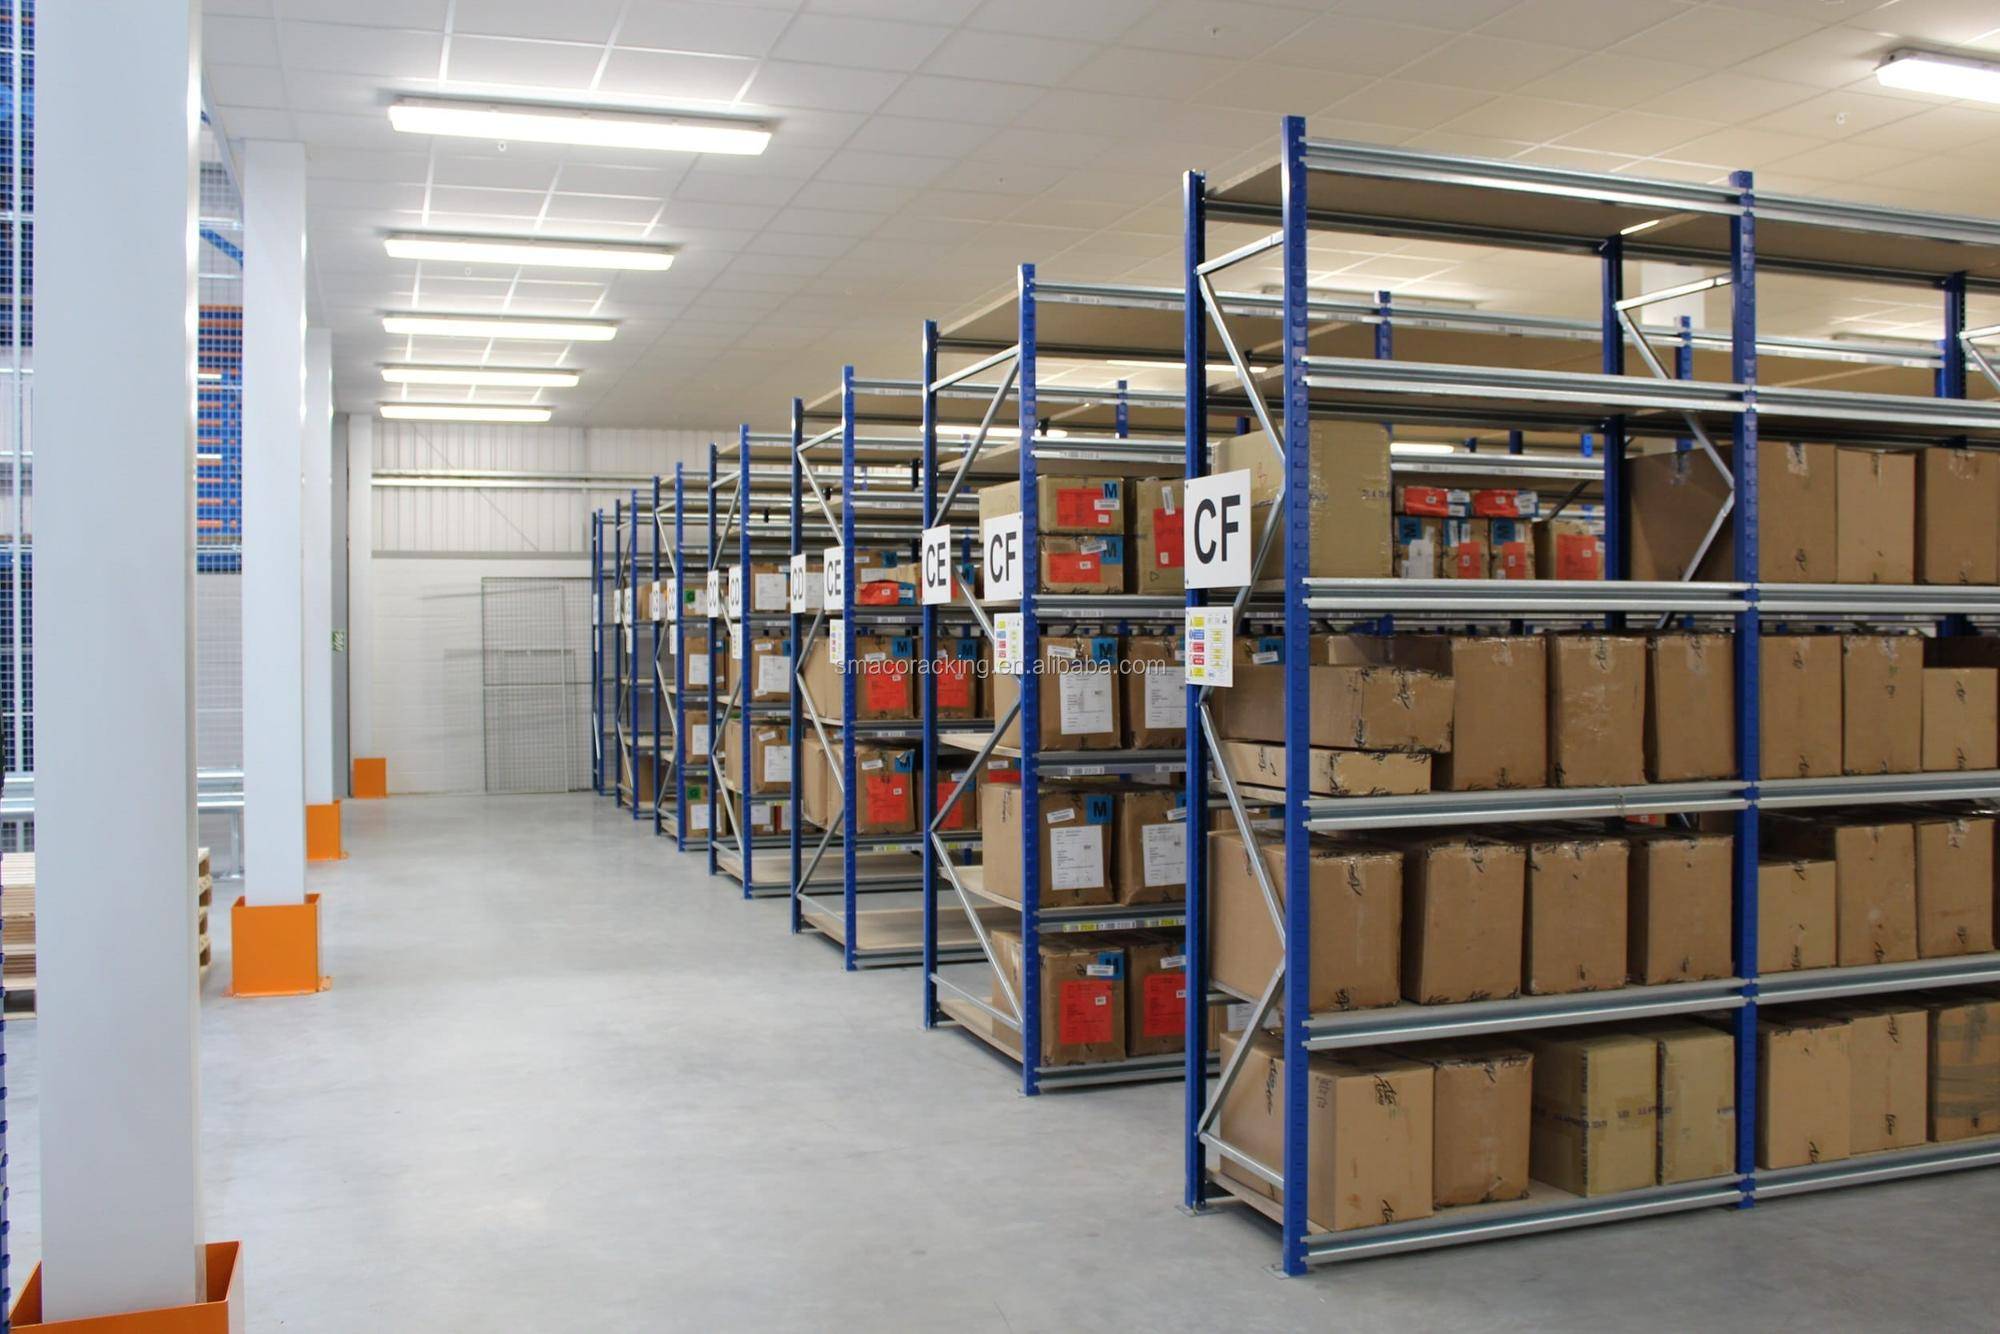 Commercial Adjustable Mental Medium Duty Racks Wide Span Shelving